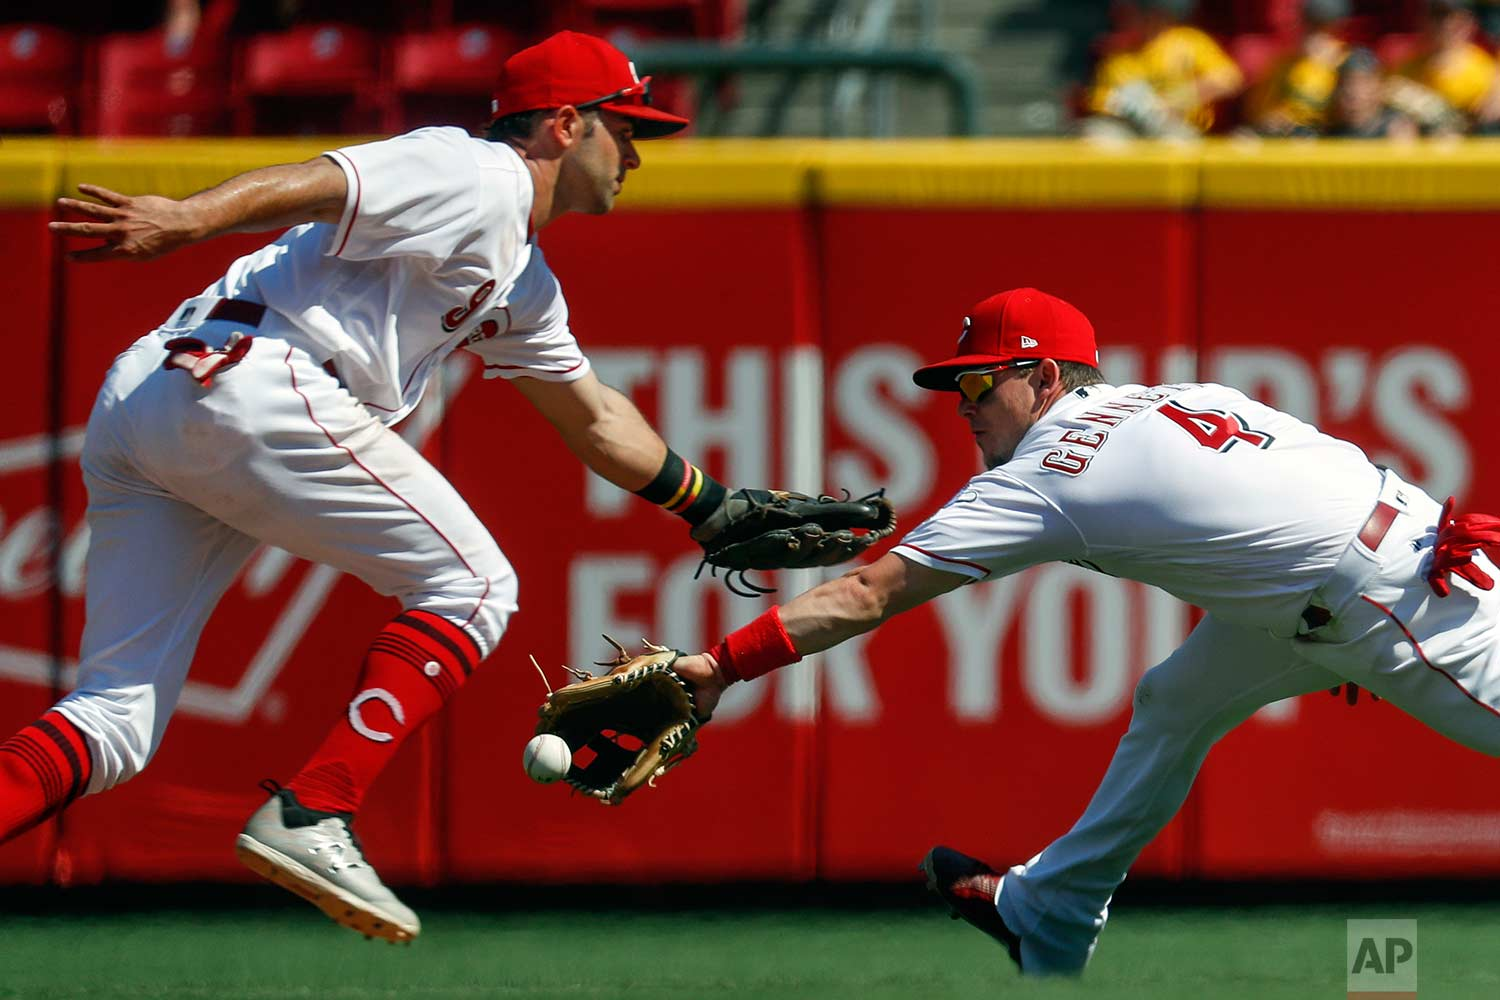 Cincinnati Reds second baseman Scooter Gennett (4) fields a single hit by Washington Nationals' Wilmer Difo in the ninth inning of a baseball game, Sunday, July 16, 2017, in Cincinnati. (AP Photo/John Minchillo)